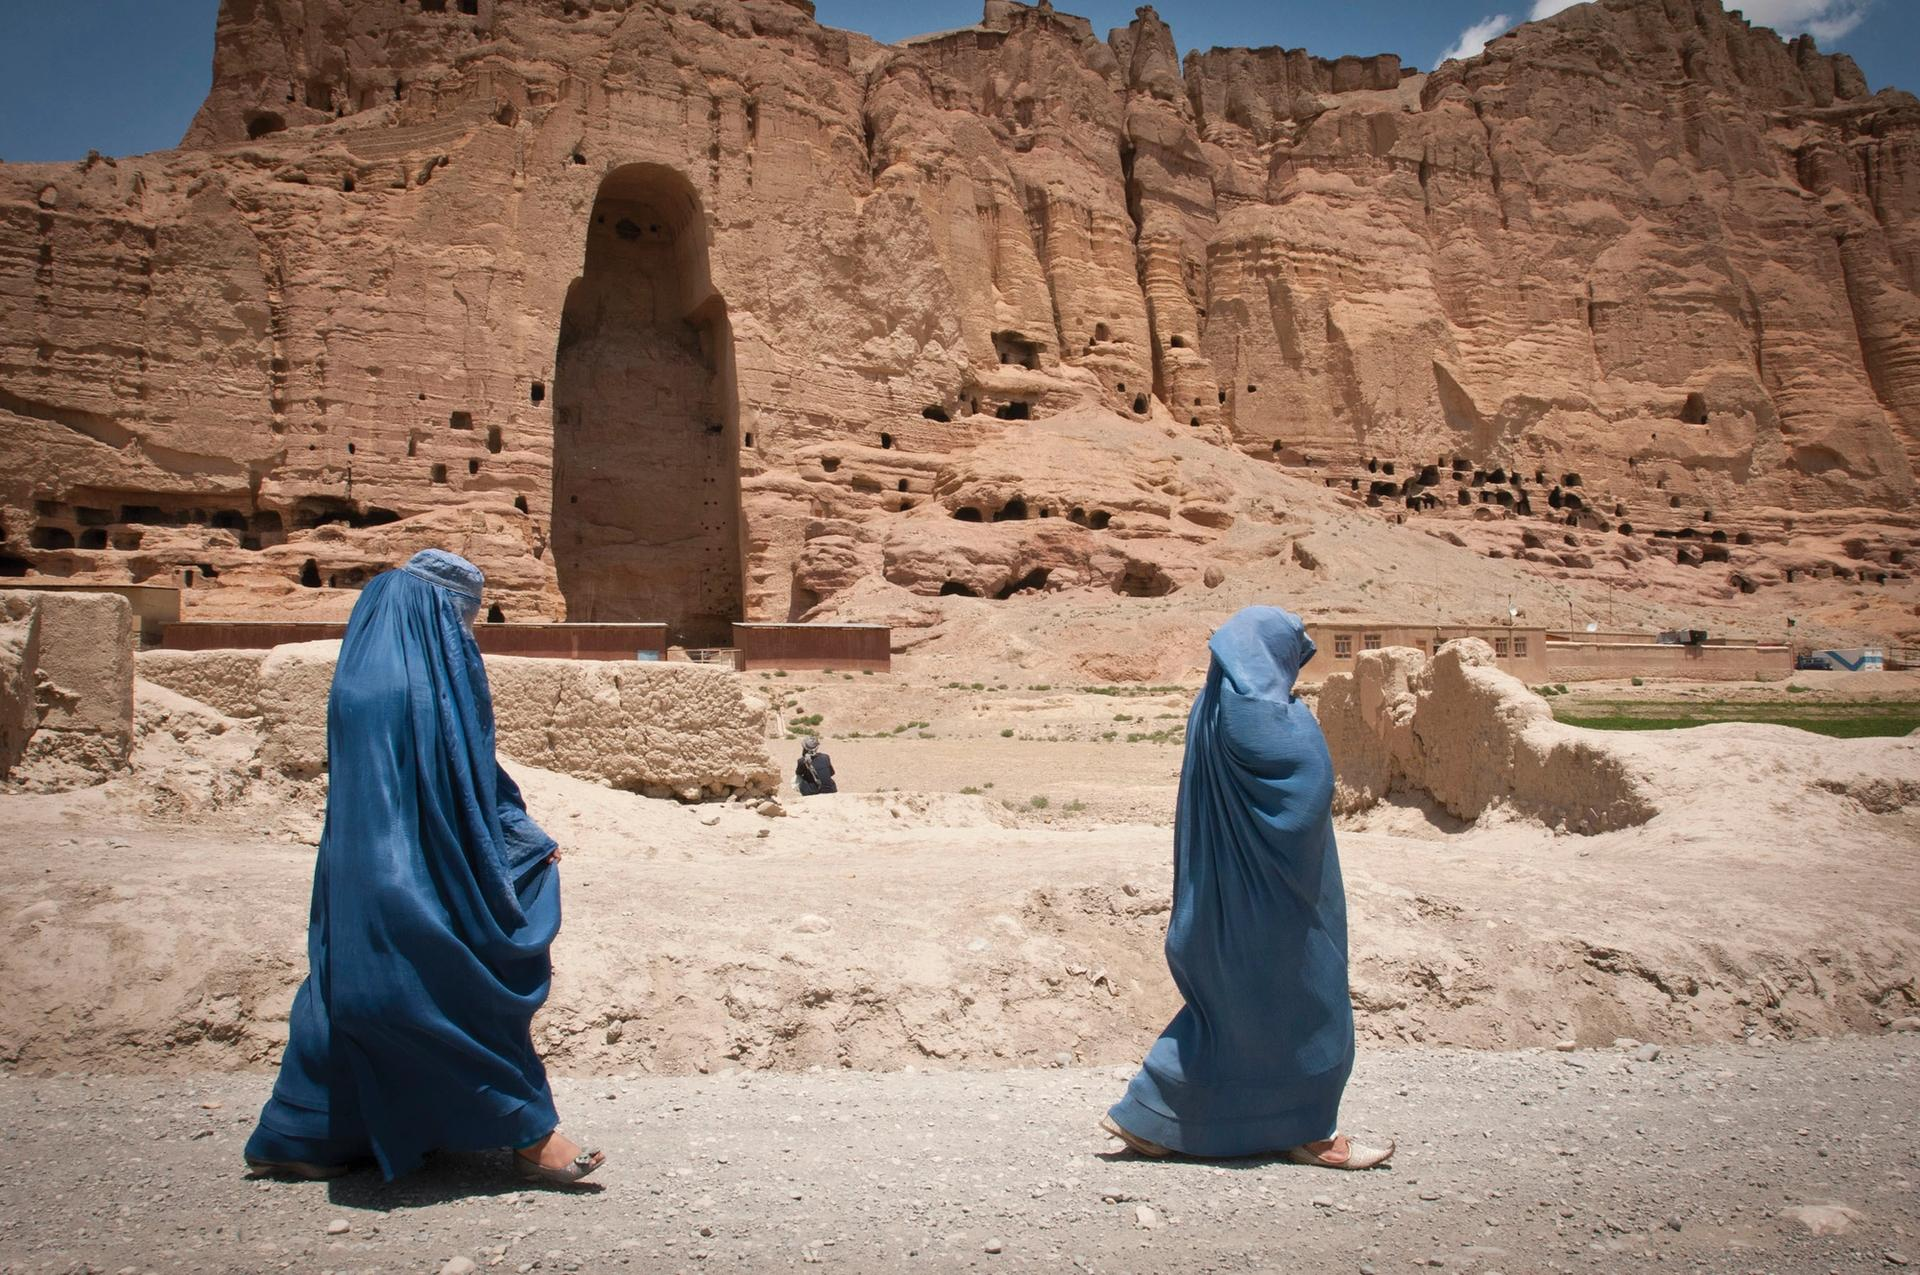 The ancient Buddhas of Bamiyan, the sculptures in Afghanistan that were built in 507AD and 554AD, were the largest statues of standing Buddha on Earth until the Taliban blew them up in 2001 Photo: US Army / Sgt. Ken Scar, 7th Mobile Public Affairs Detachment